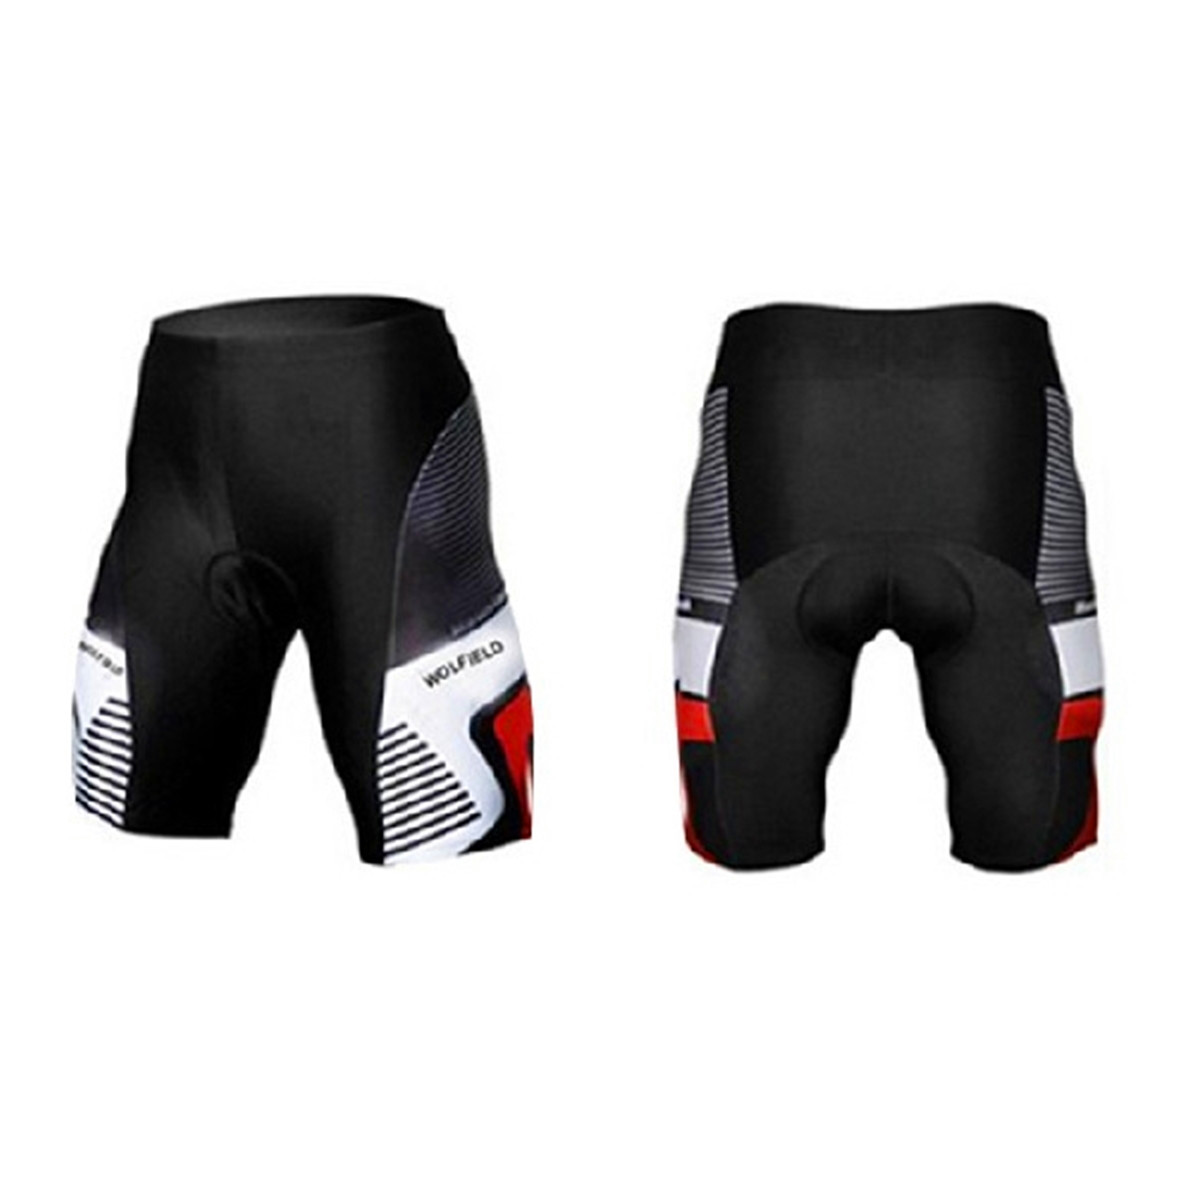 neu herren fahrradhose radhose radlerhose radshort. Black Bedroom Furniture Sets. Home Design Ideas